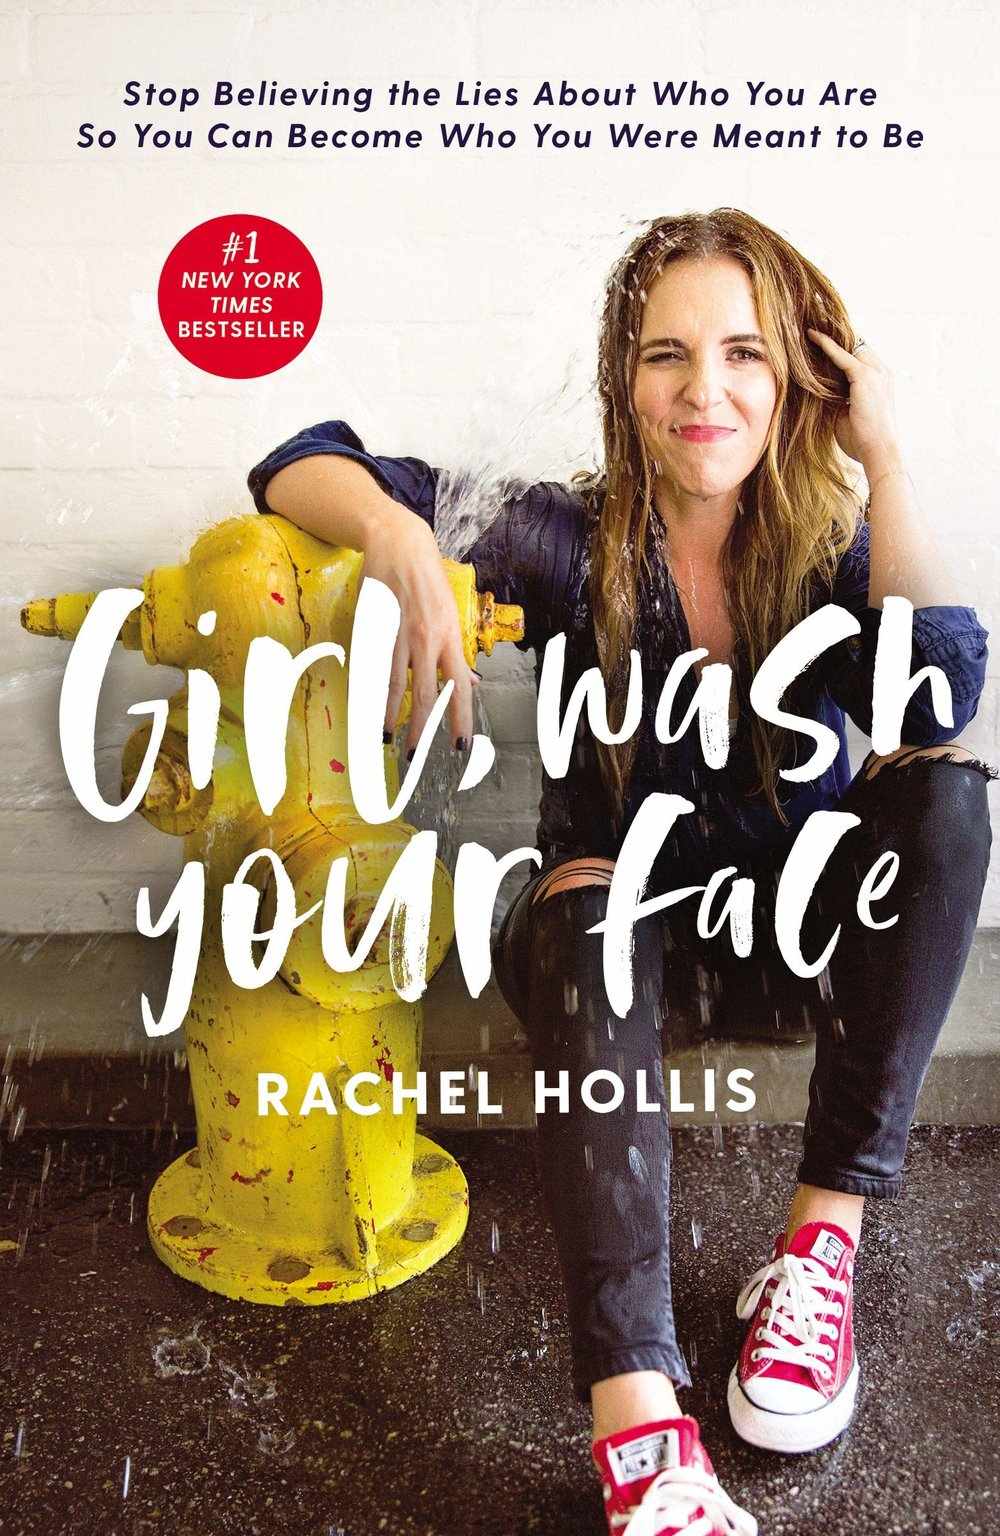 Rachel unpacks and examines the falsehoods that once left her feeling overwhelmed and unworthy, and reveals the specific practical strategies that helped her move past them. In the process, she encourages, entertains, and even kicks a little butt, all to convince you to do whatever it takes to get real and become the joyous, confident woman you were meant to be.Girl, Wash Your Face shows you how to live with passion and hustle--and how to give yourself grace without giving up.